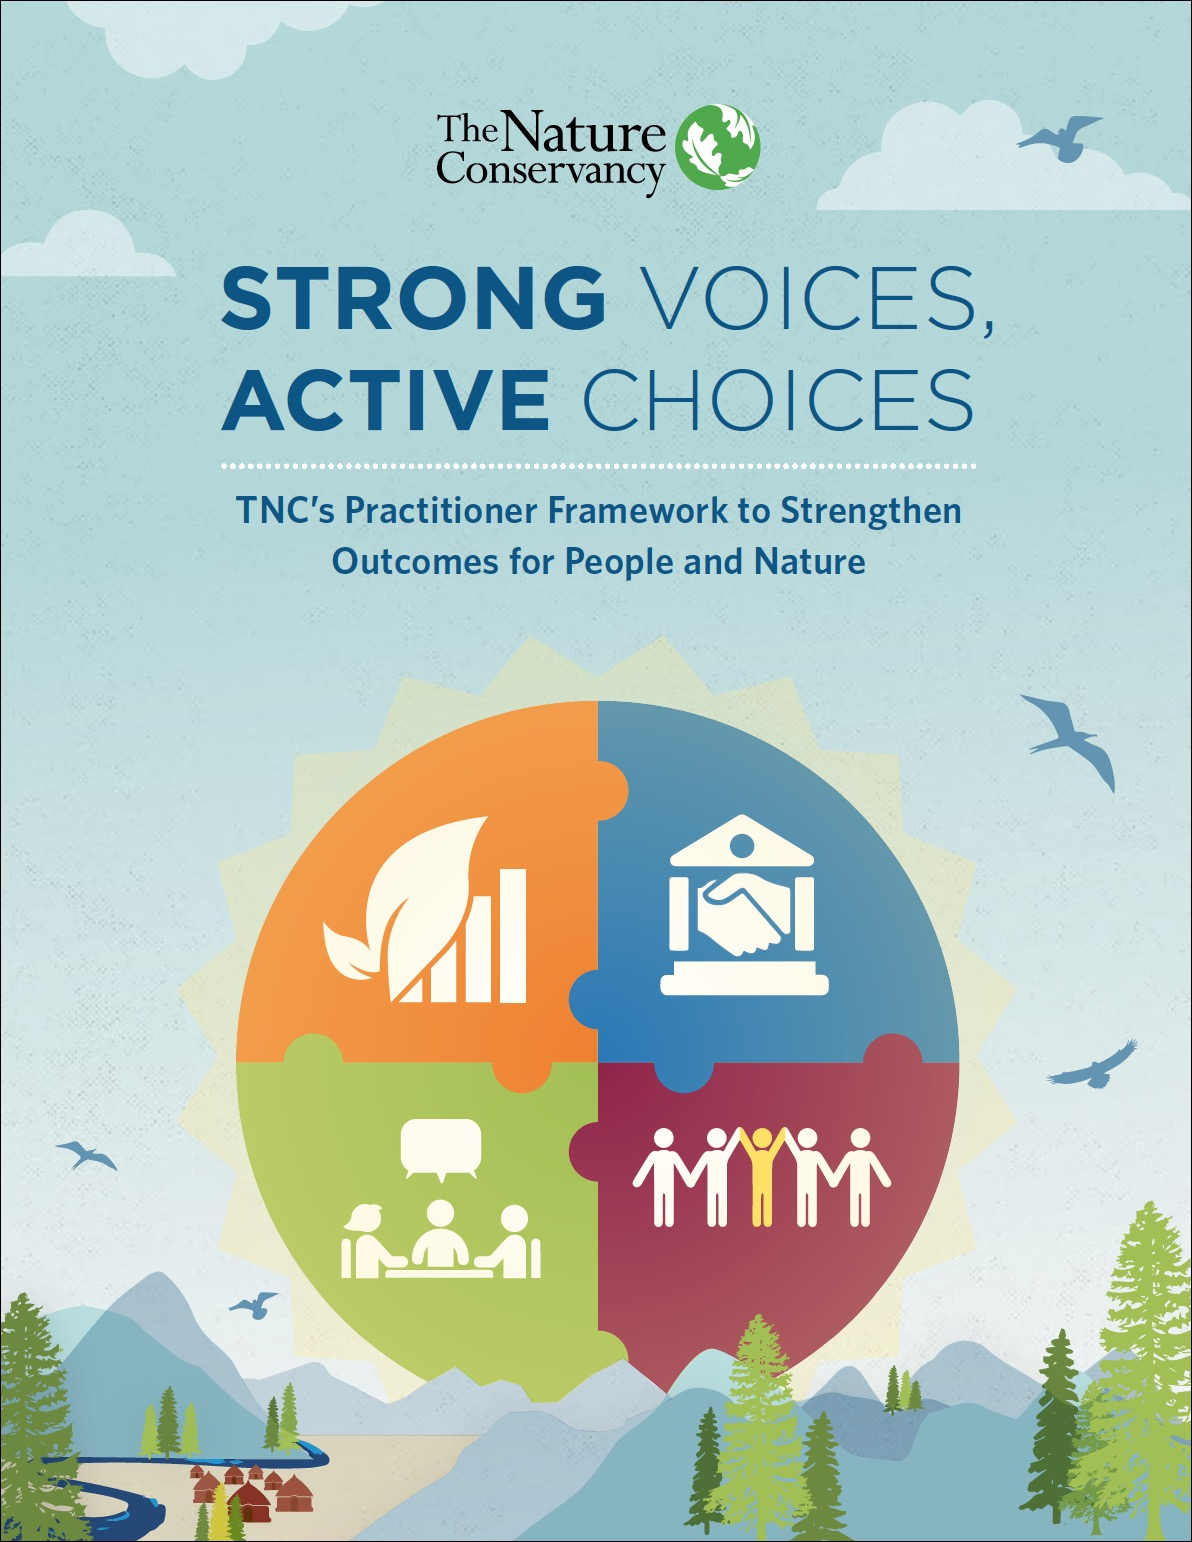 TNC's practitioner framework to strengthen outcomes for people and nature.